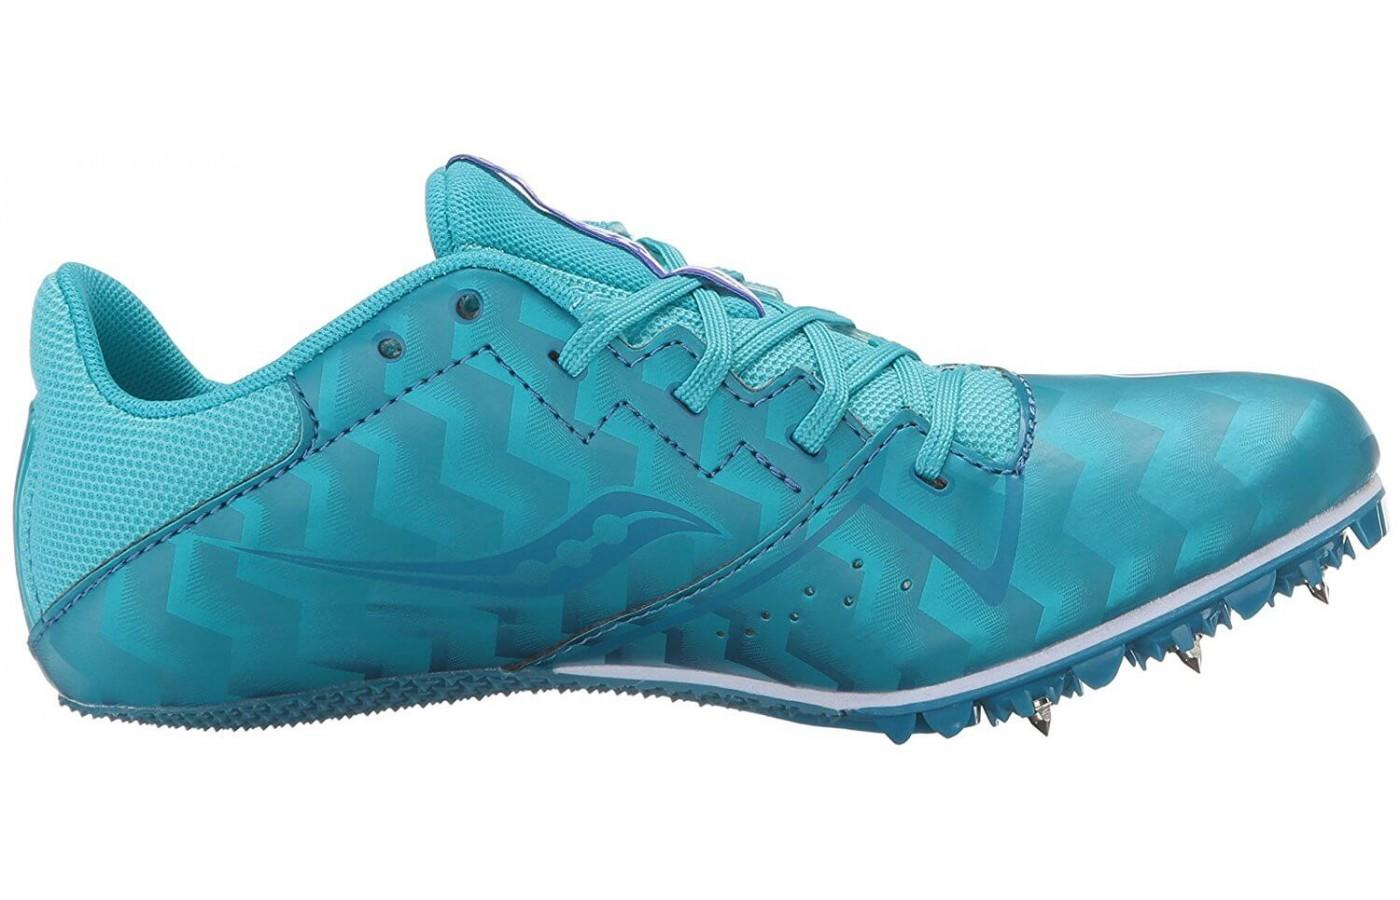 The Saucony Spitfire 4 has a supportive molded quarter cage